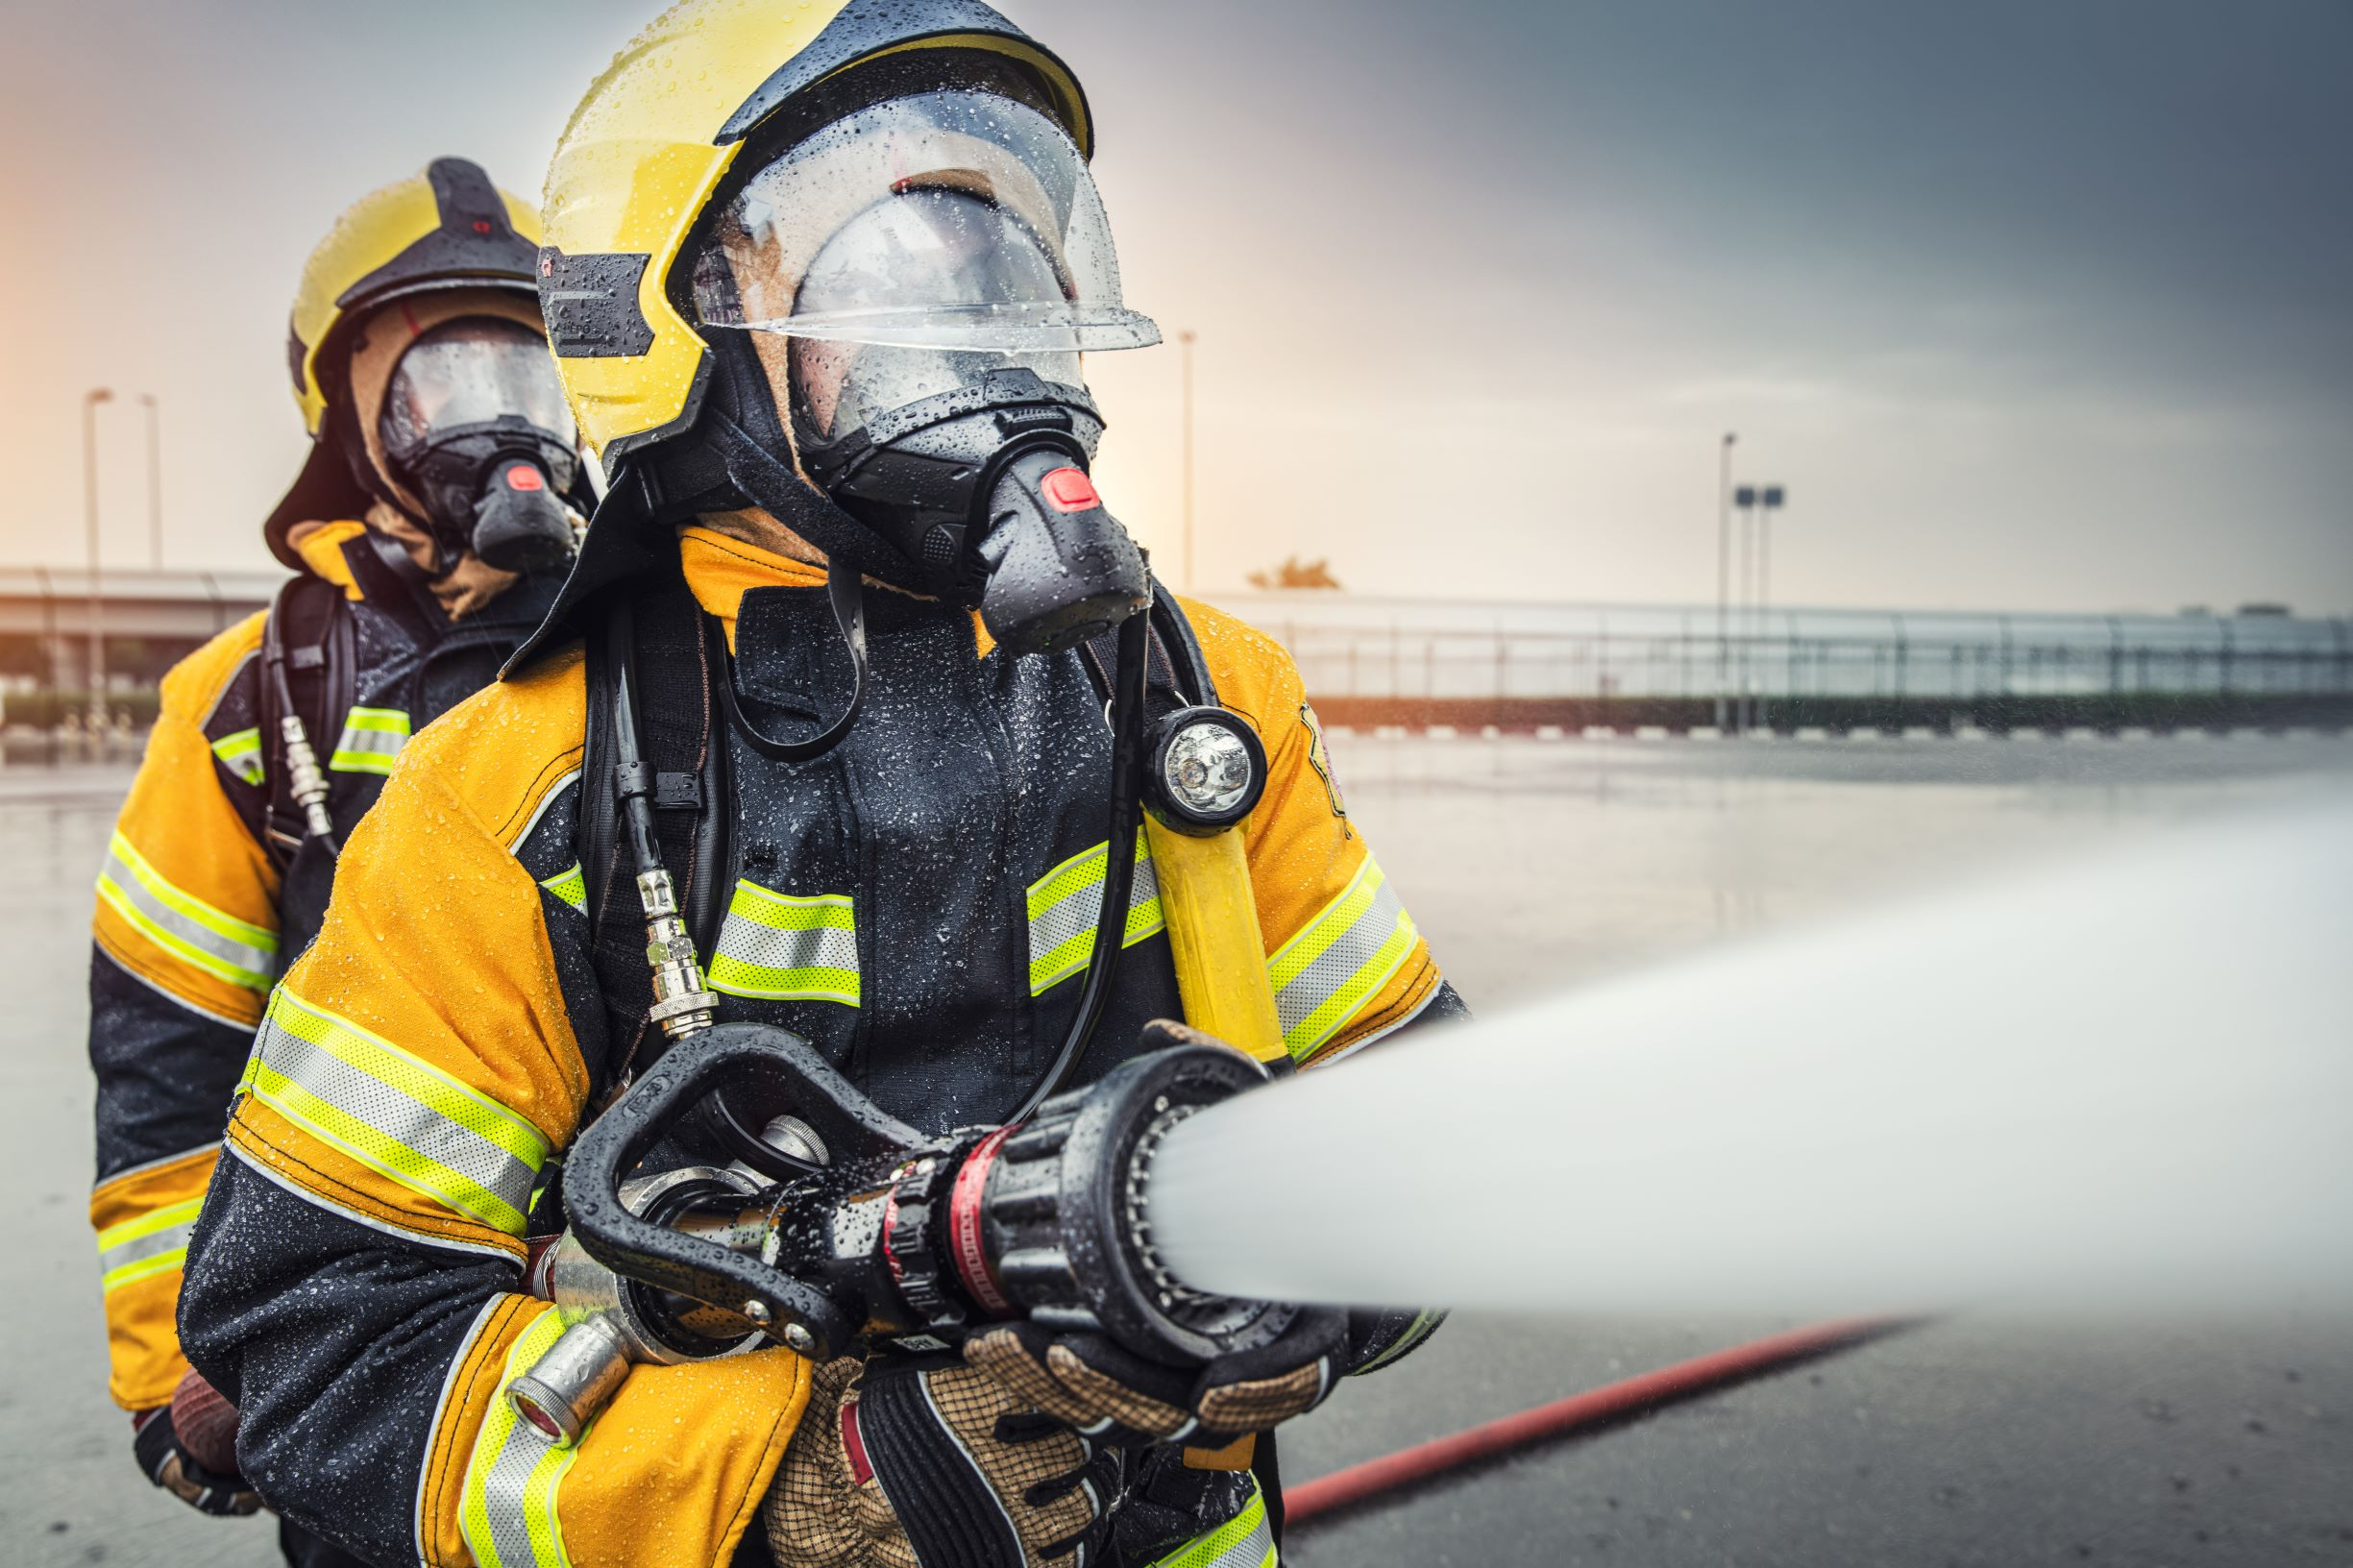 How to be a good firefighter